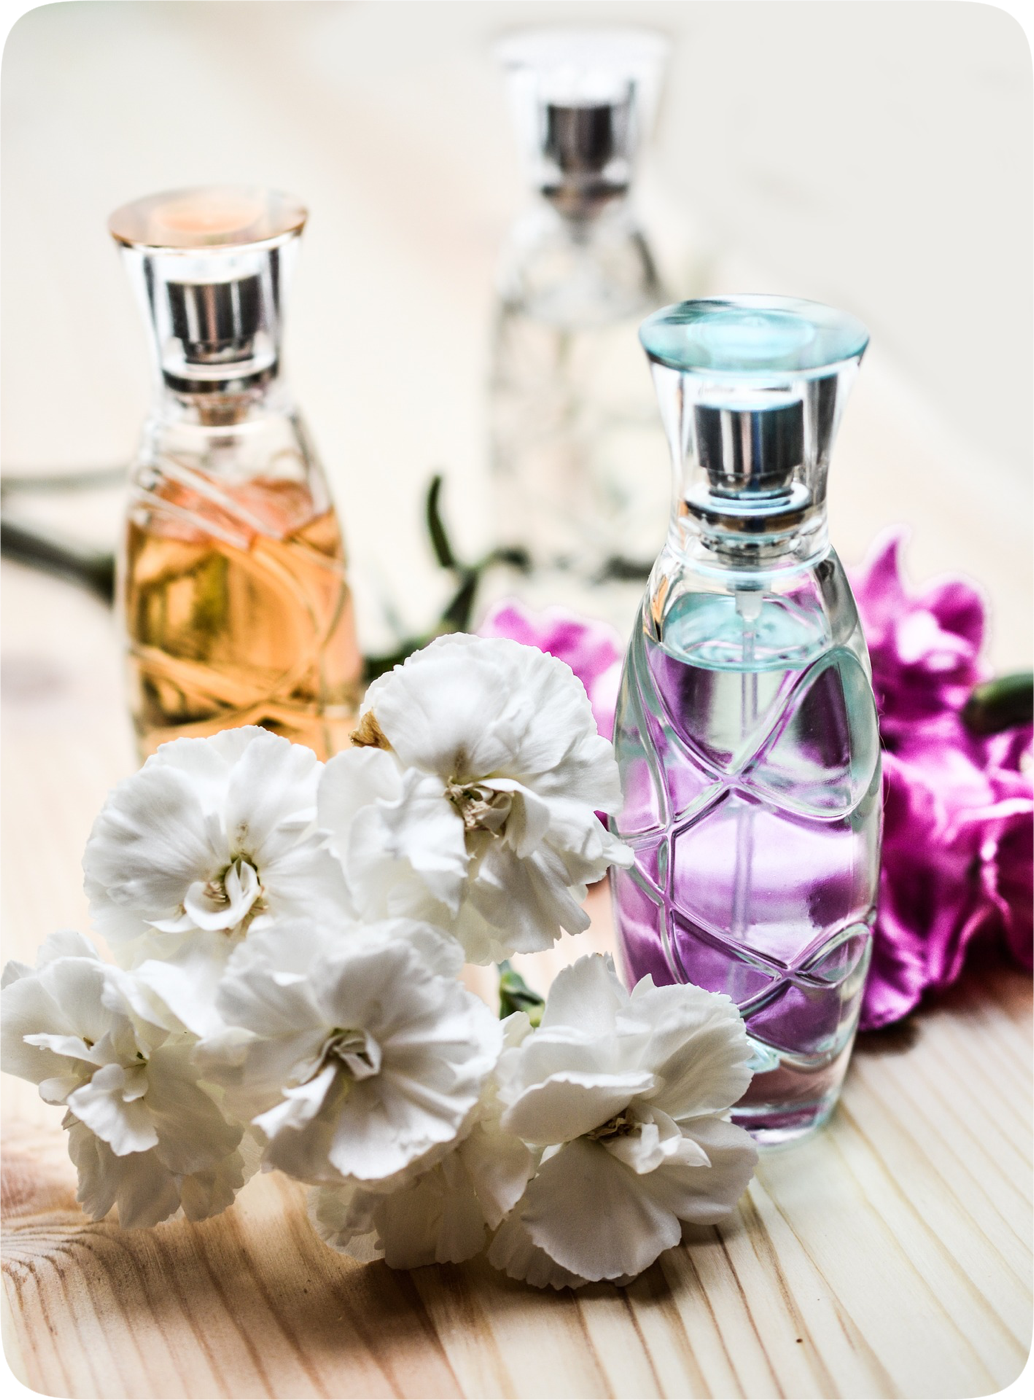 Potential allergens like flowers and perfume